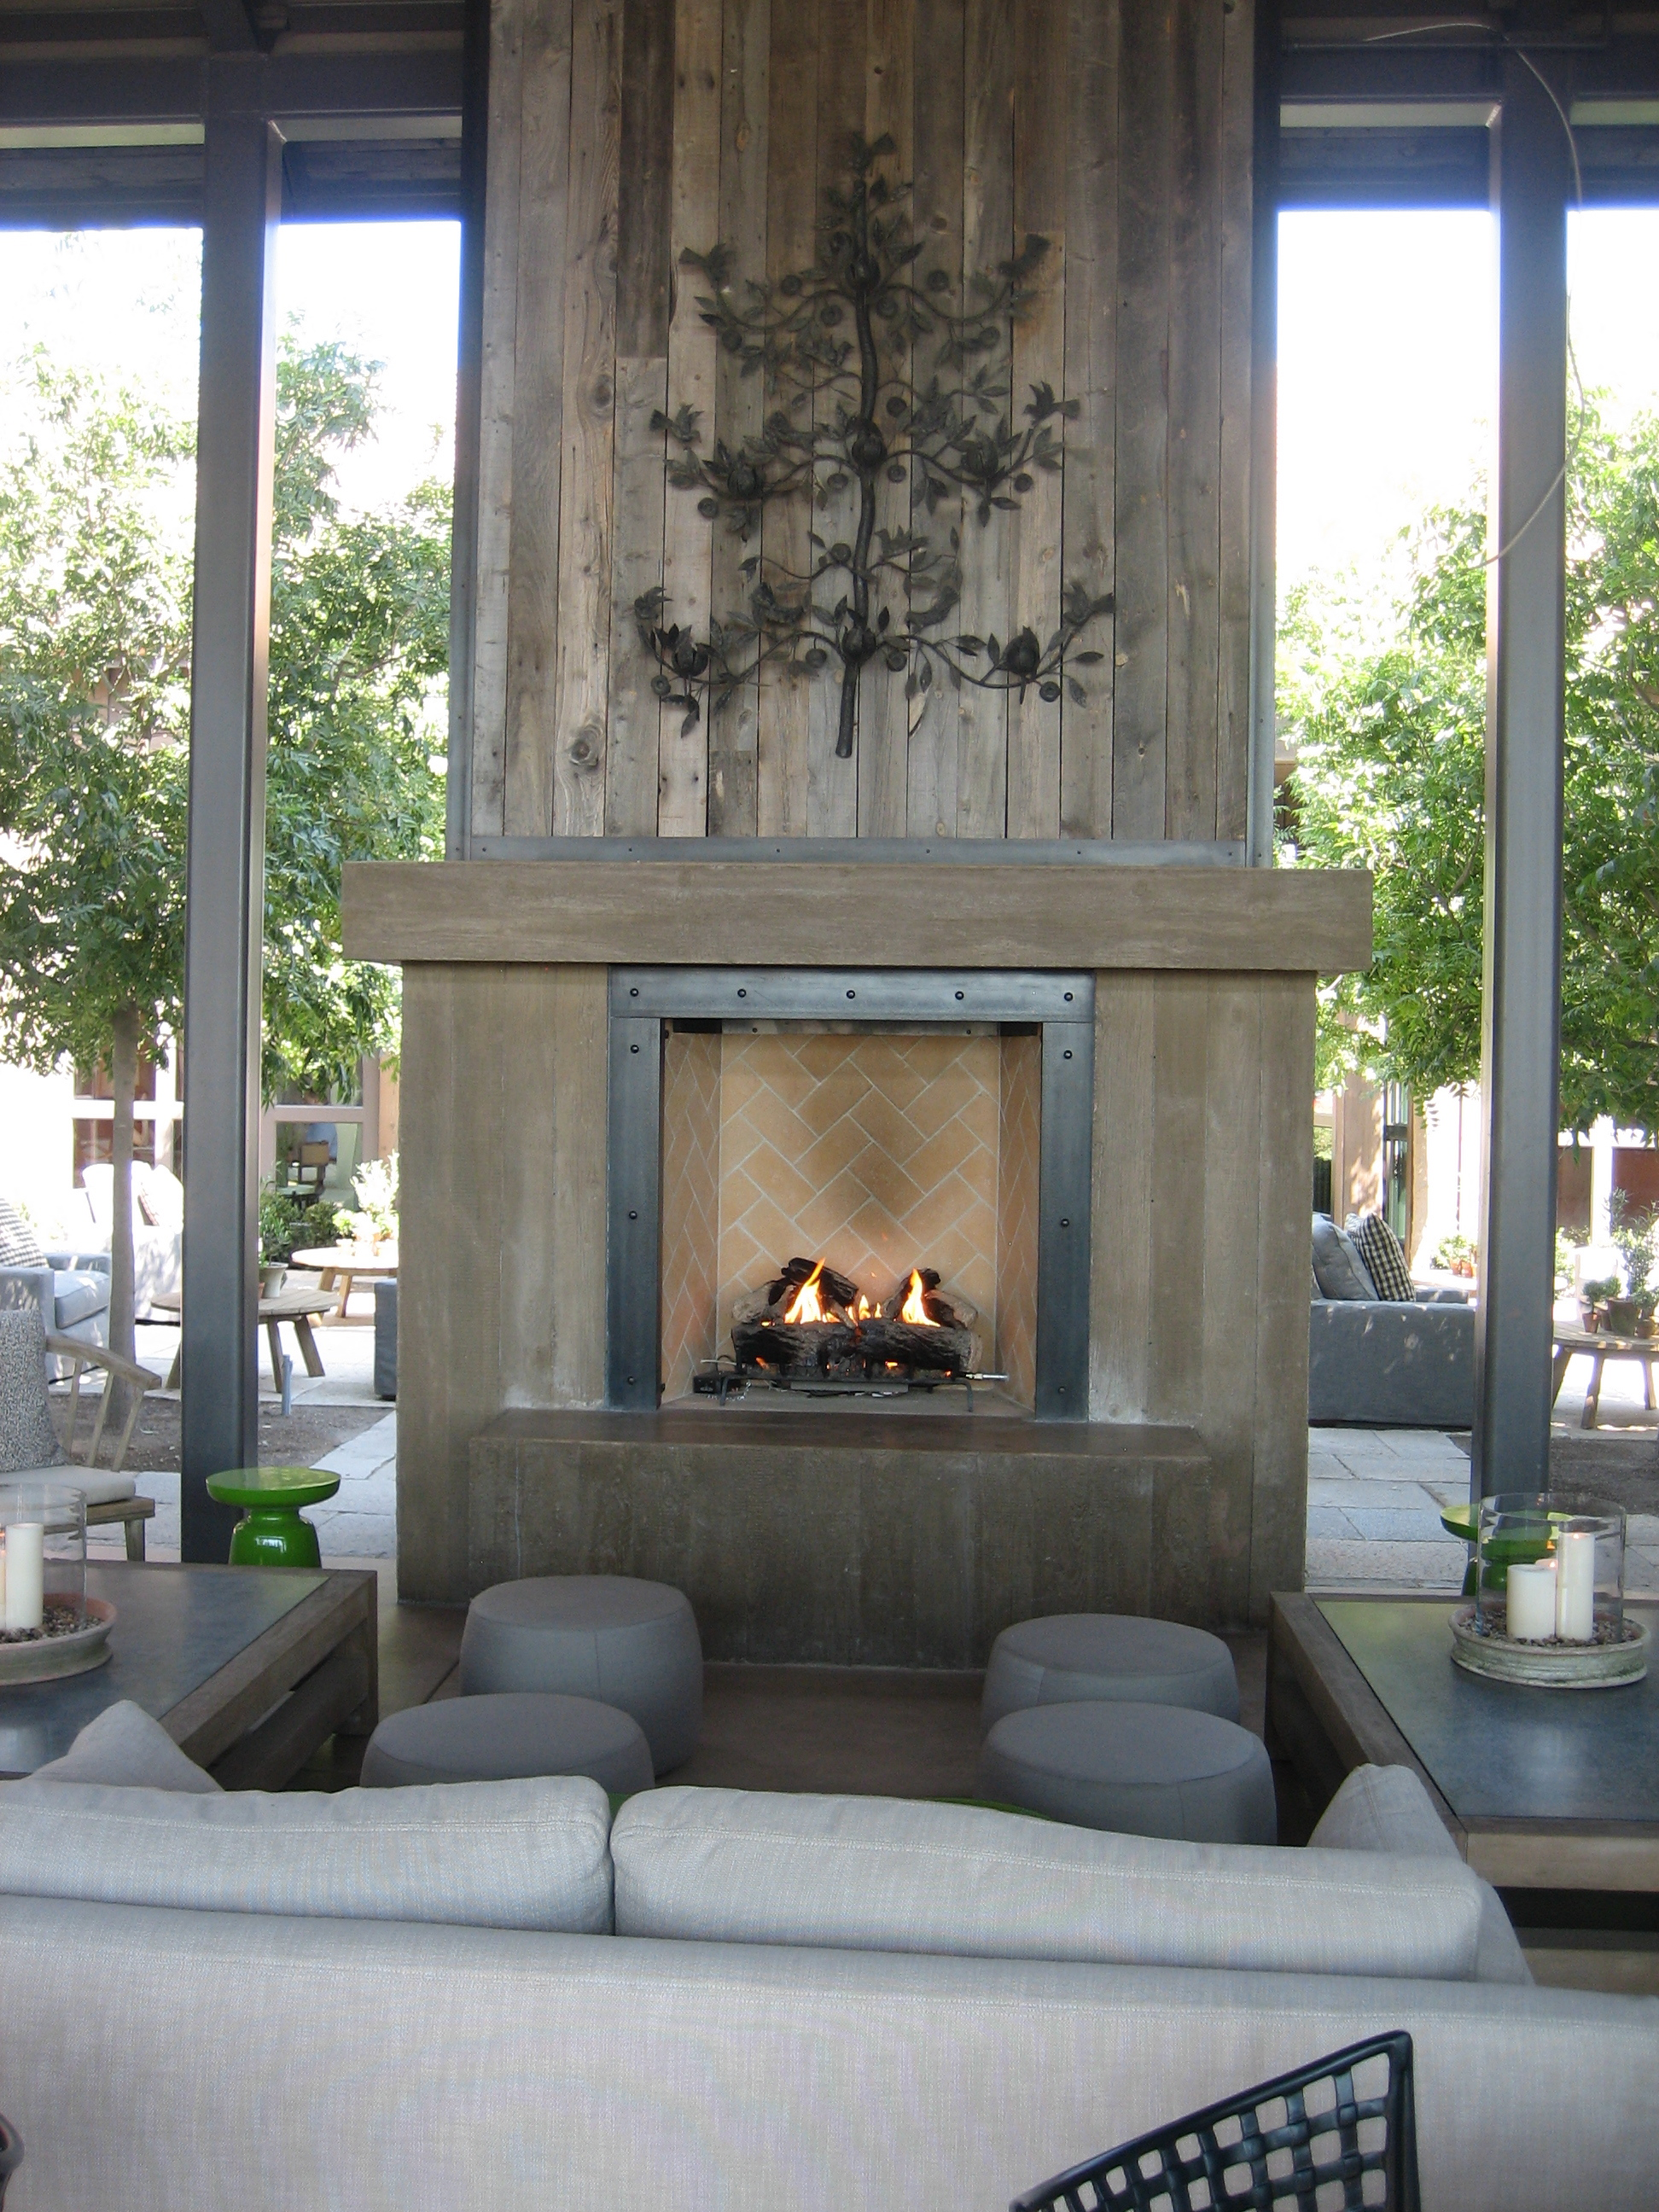 Wine country s sexy new winery winefashionista - Interactive home interior decor with various modern stone fireplace ...